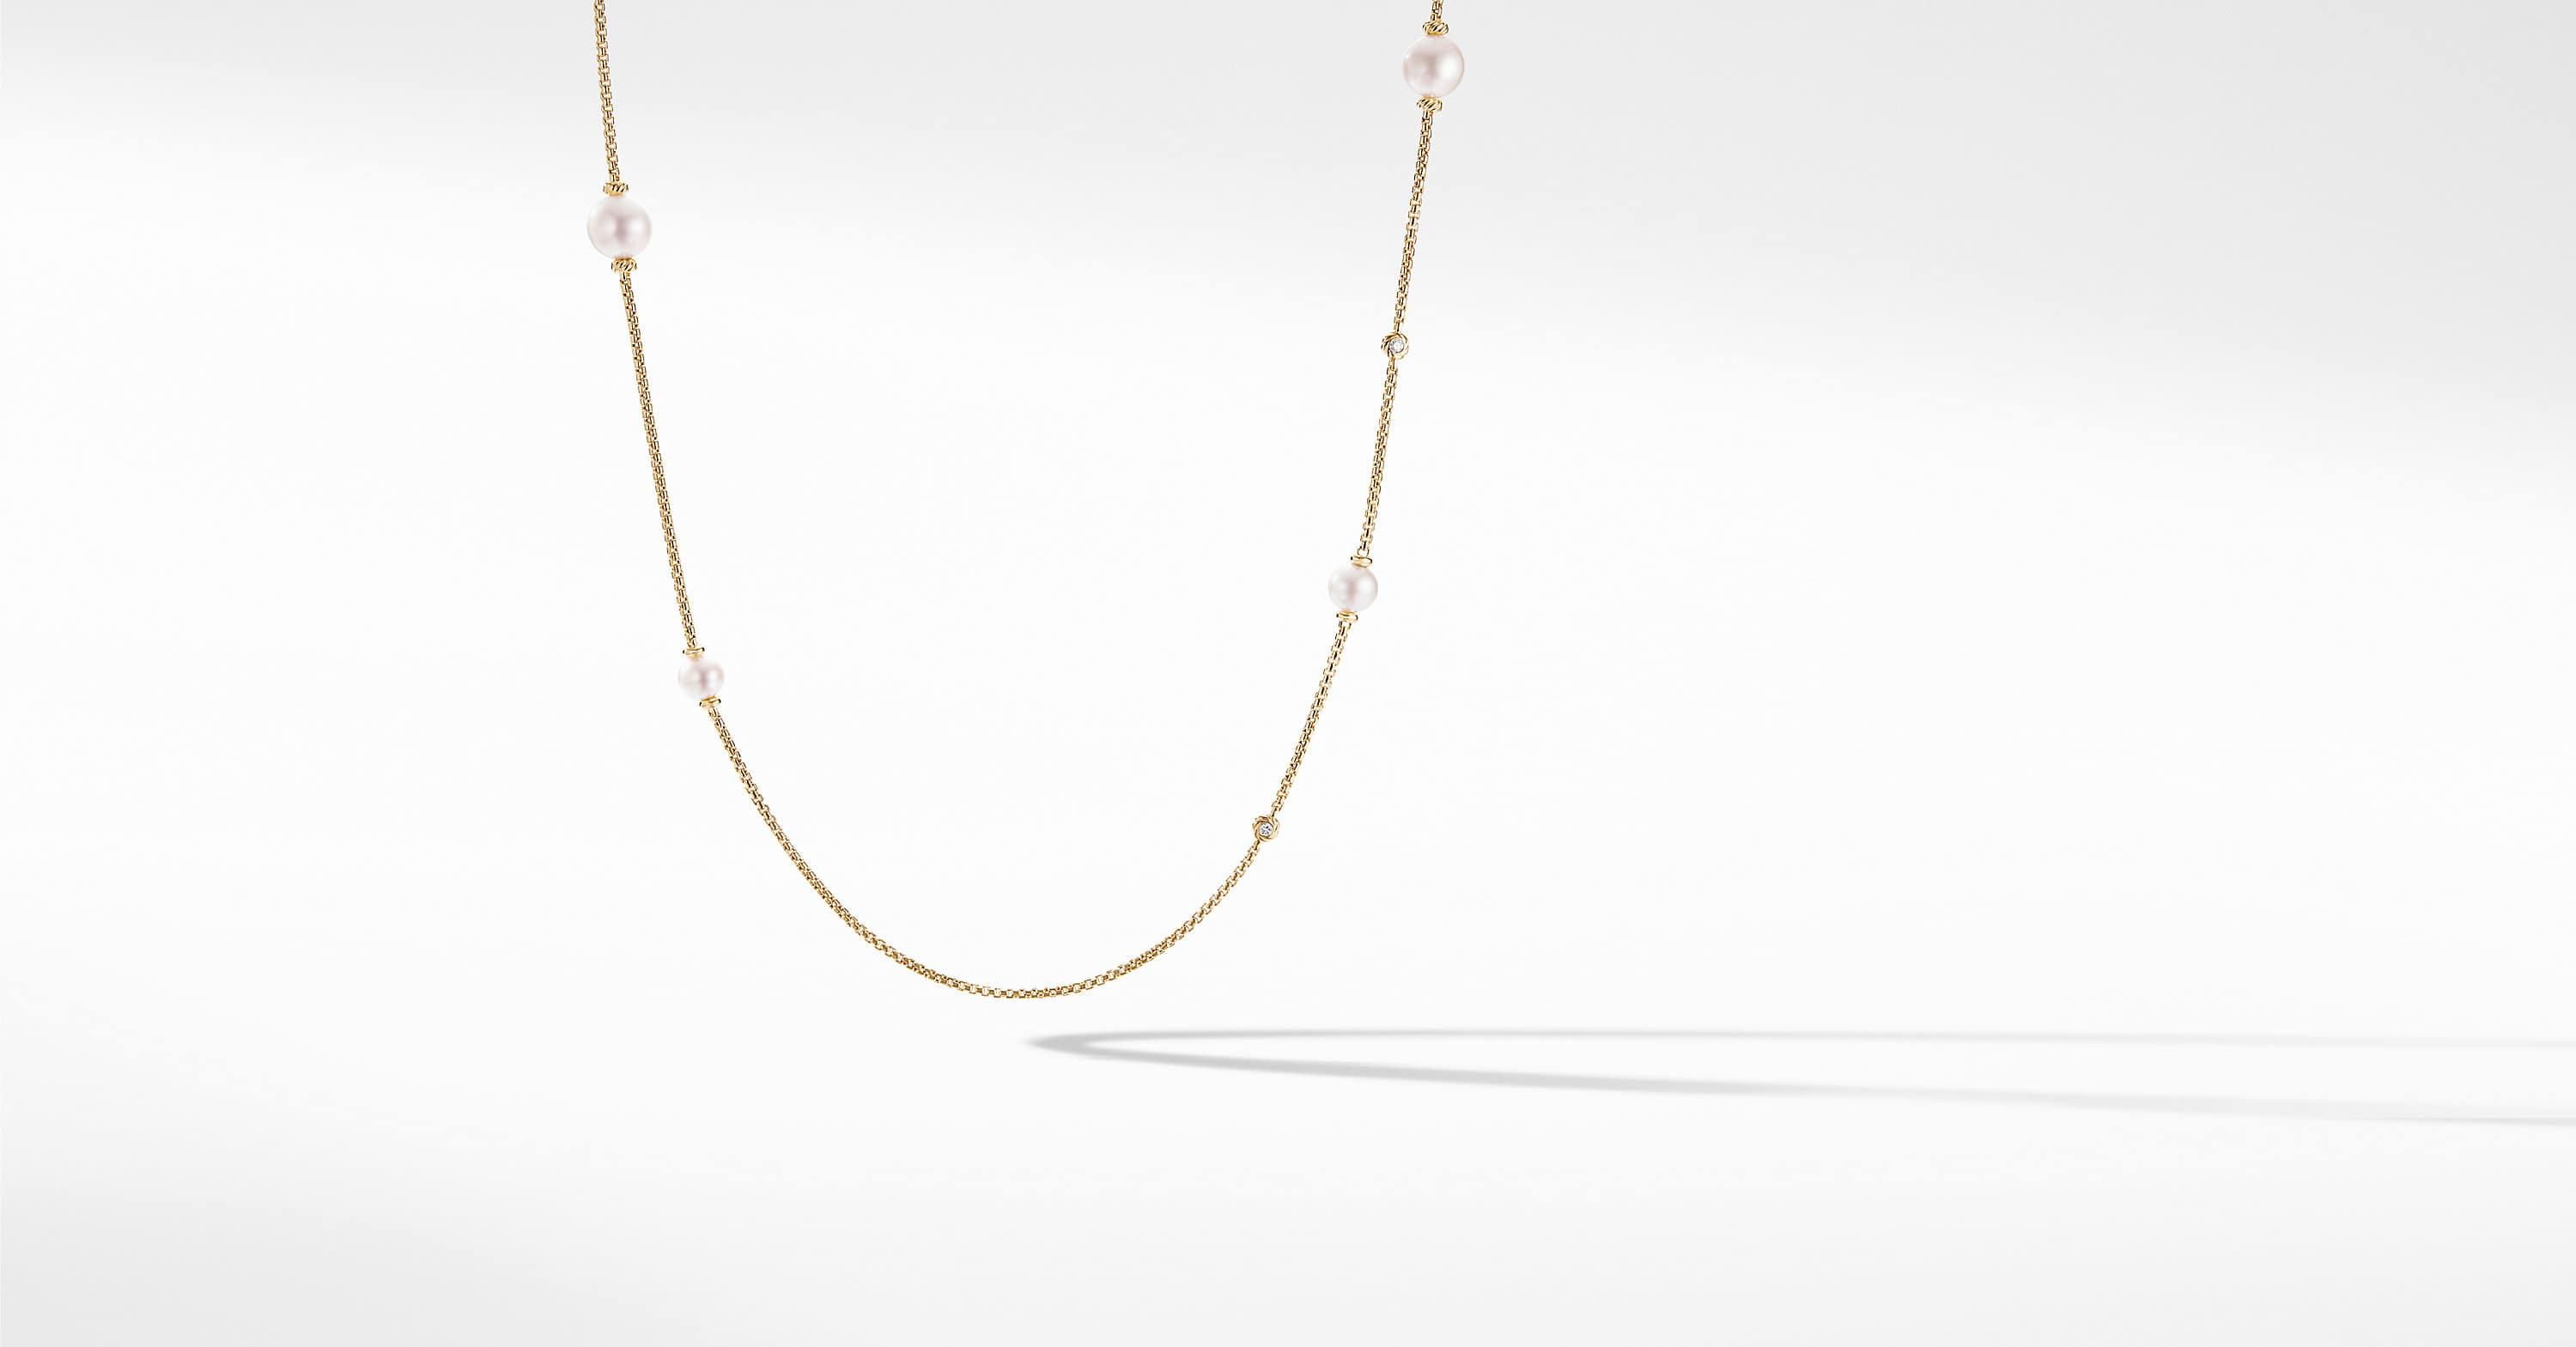 Pearl Cluster Chain Necklace in 18K Yellow Gold with Diamonds